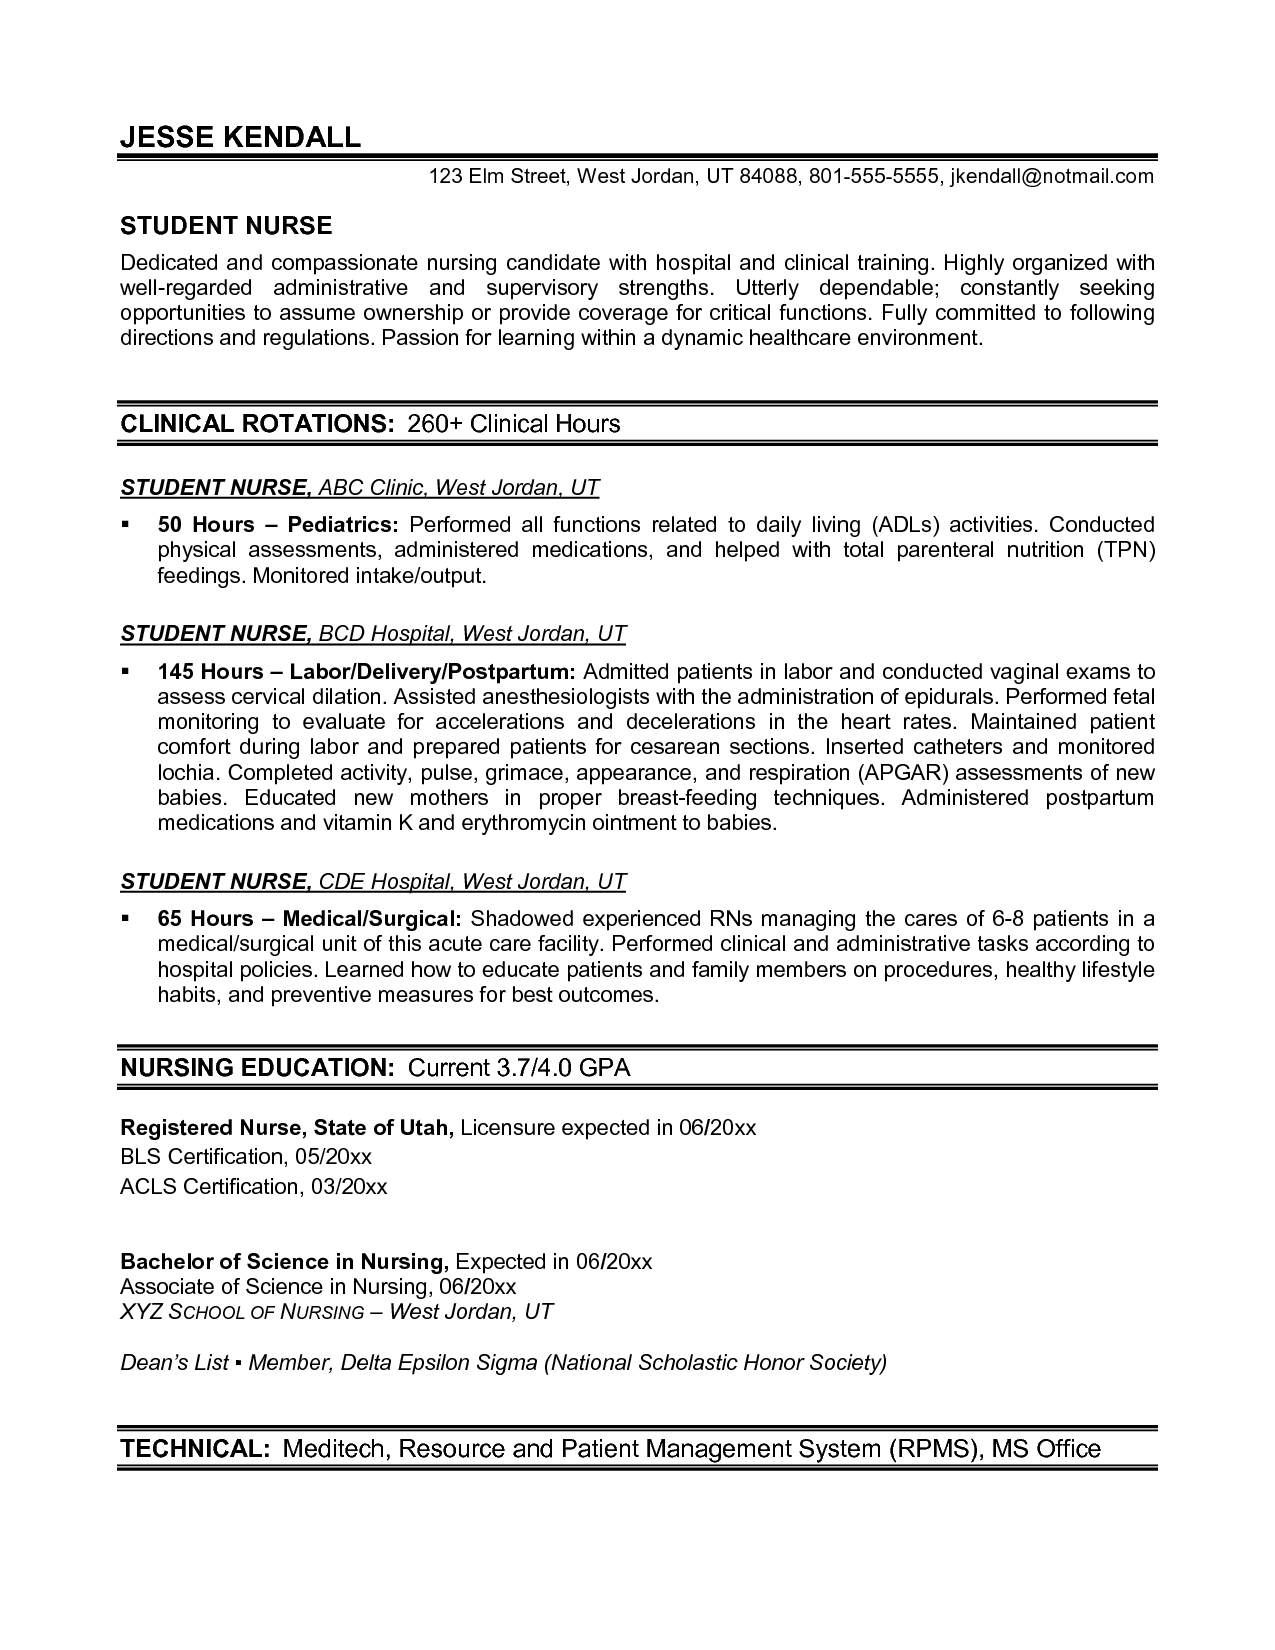 Nurses Resume Format Samples Nursing Resume Template Best Templateresume Templates